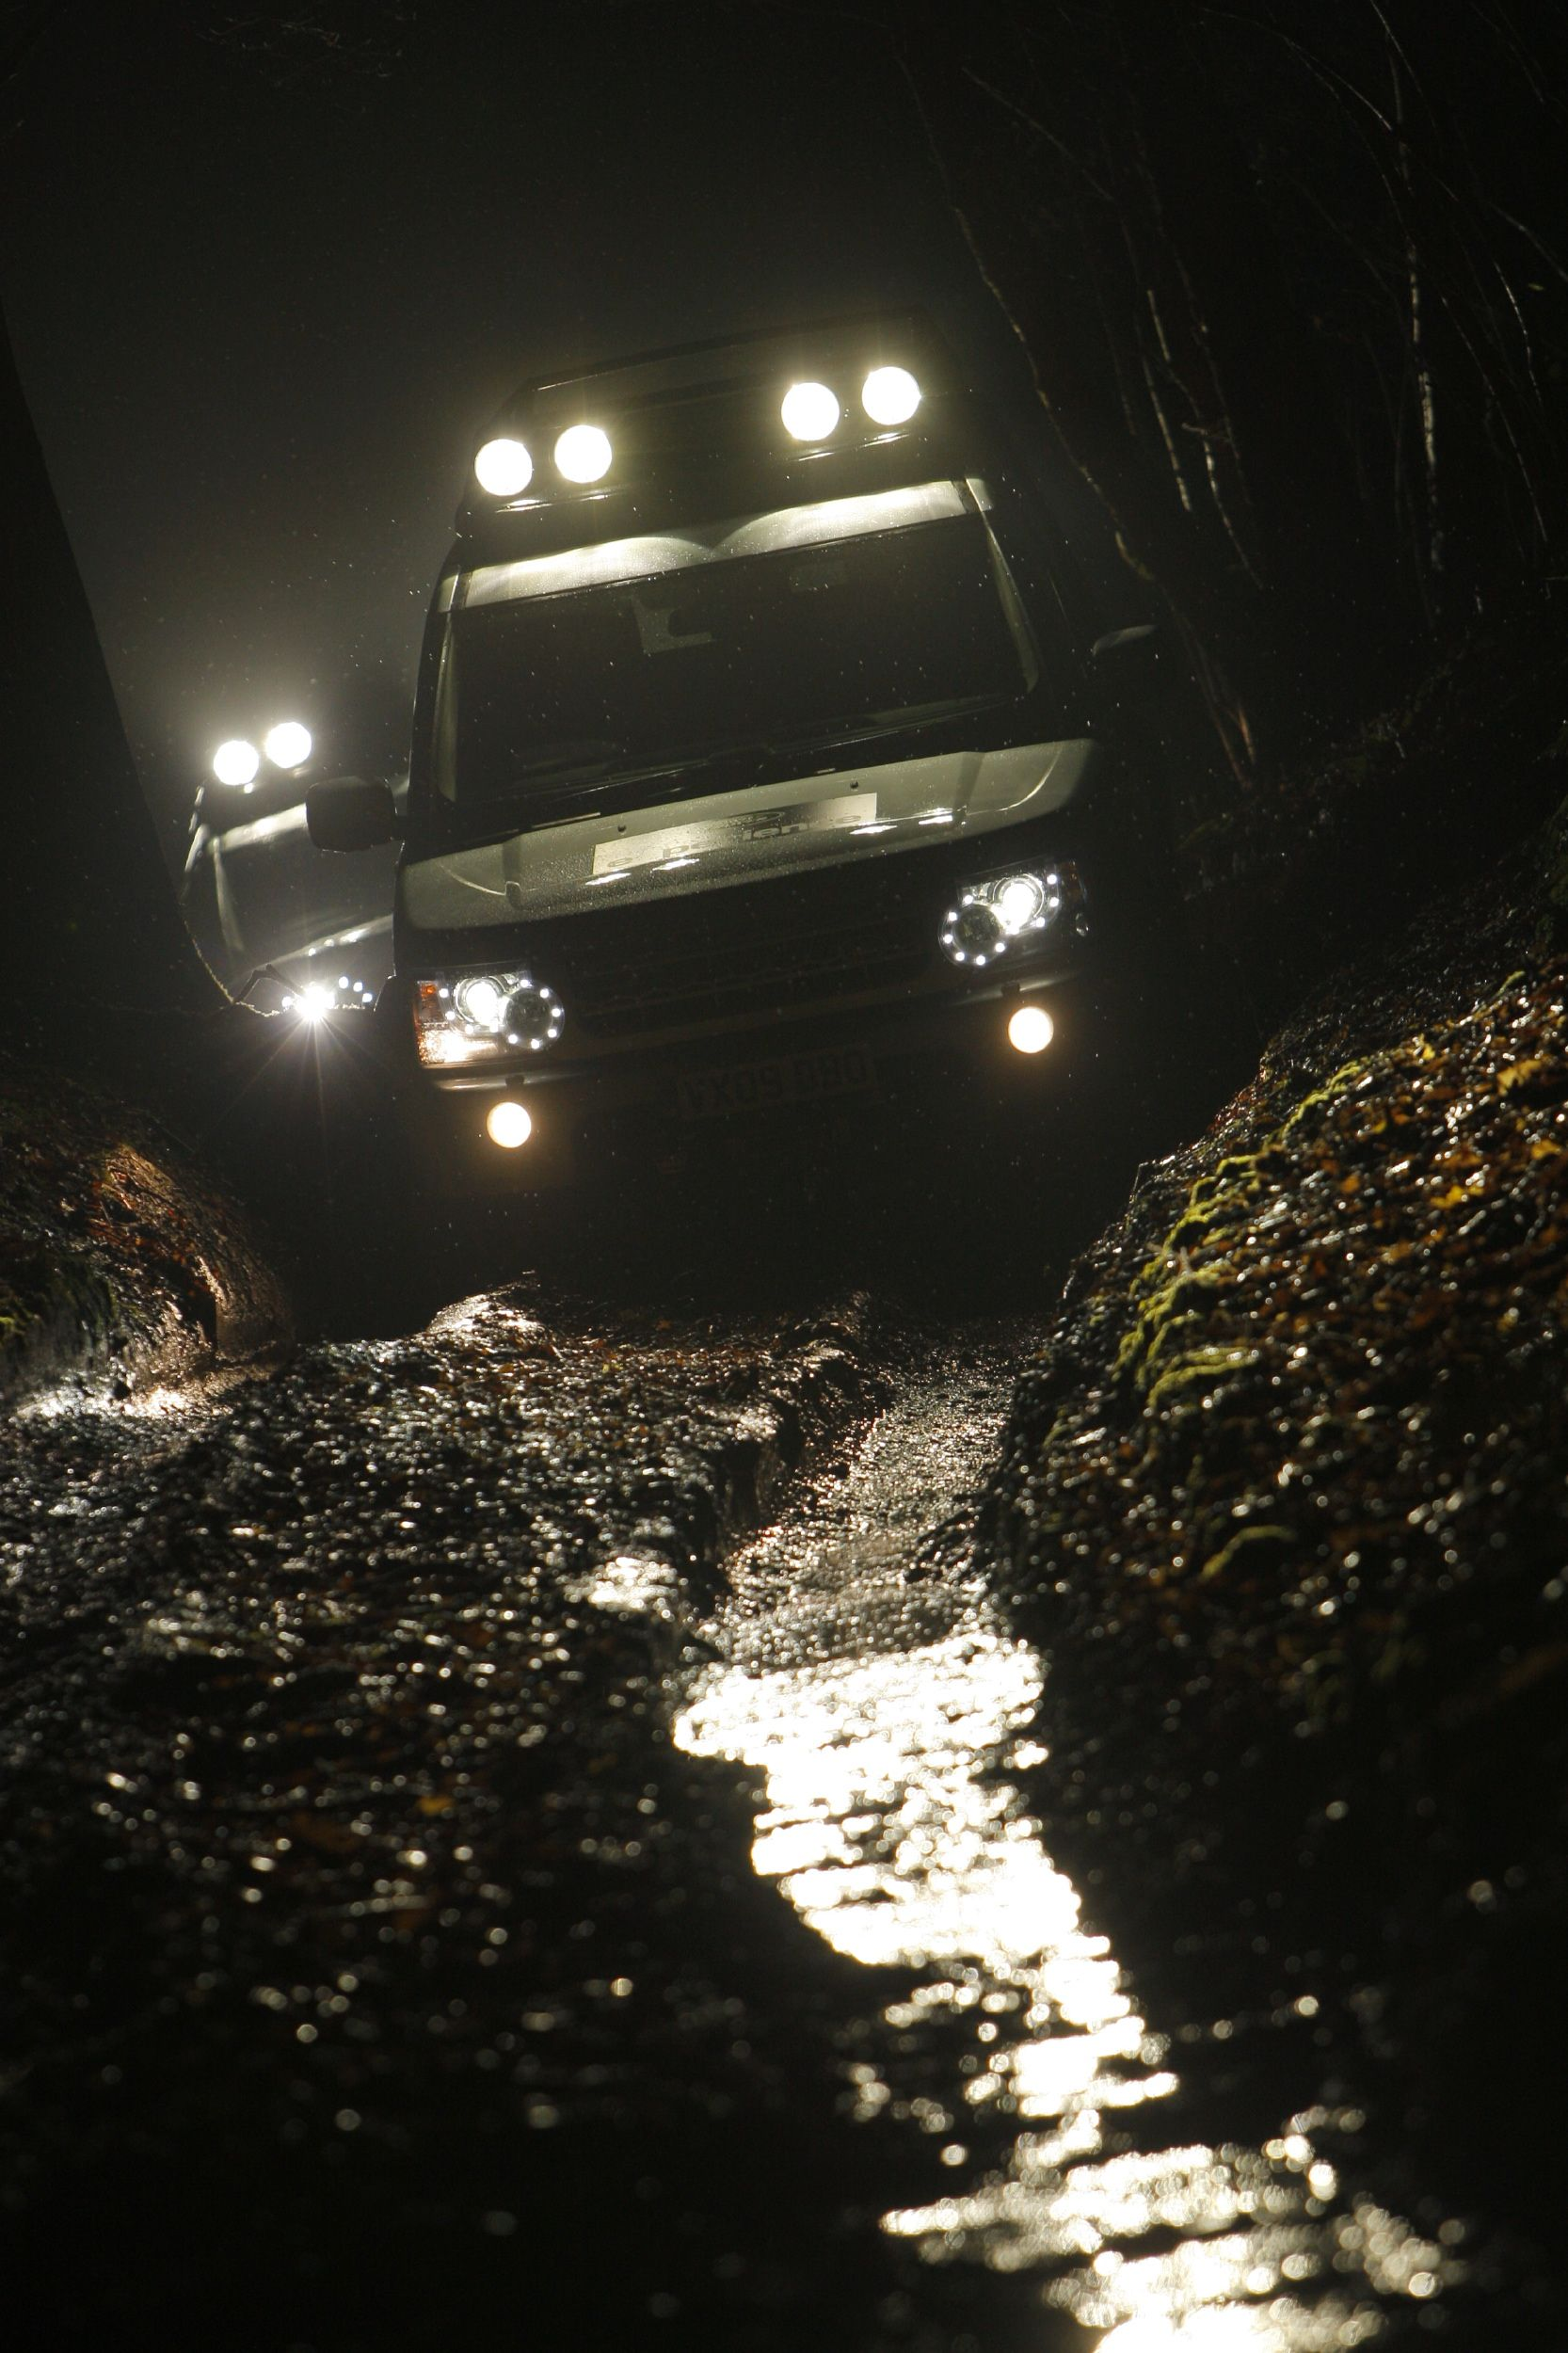 59ba580676ba #discovering at night #race #fun #excitement #pitchblack #wilderness  #friends #offroading #cars